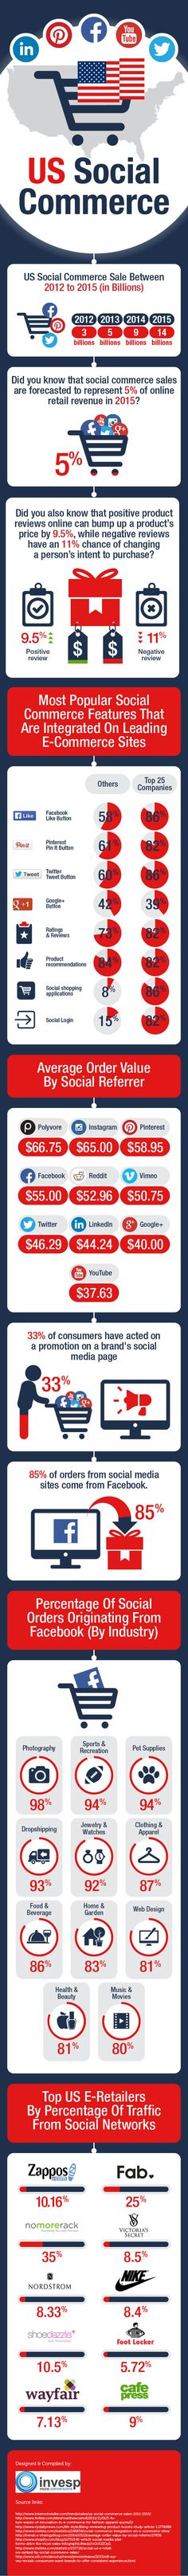 U.S. Social Commerce - Statistics & Trends